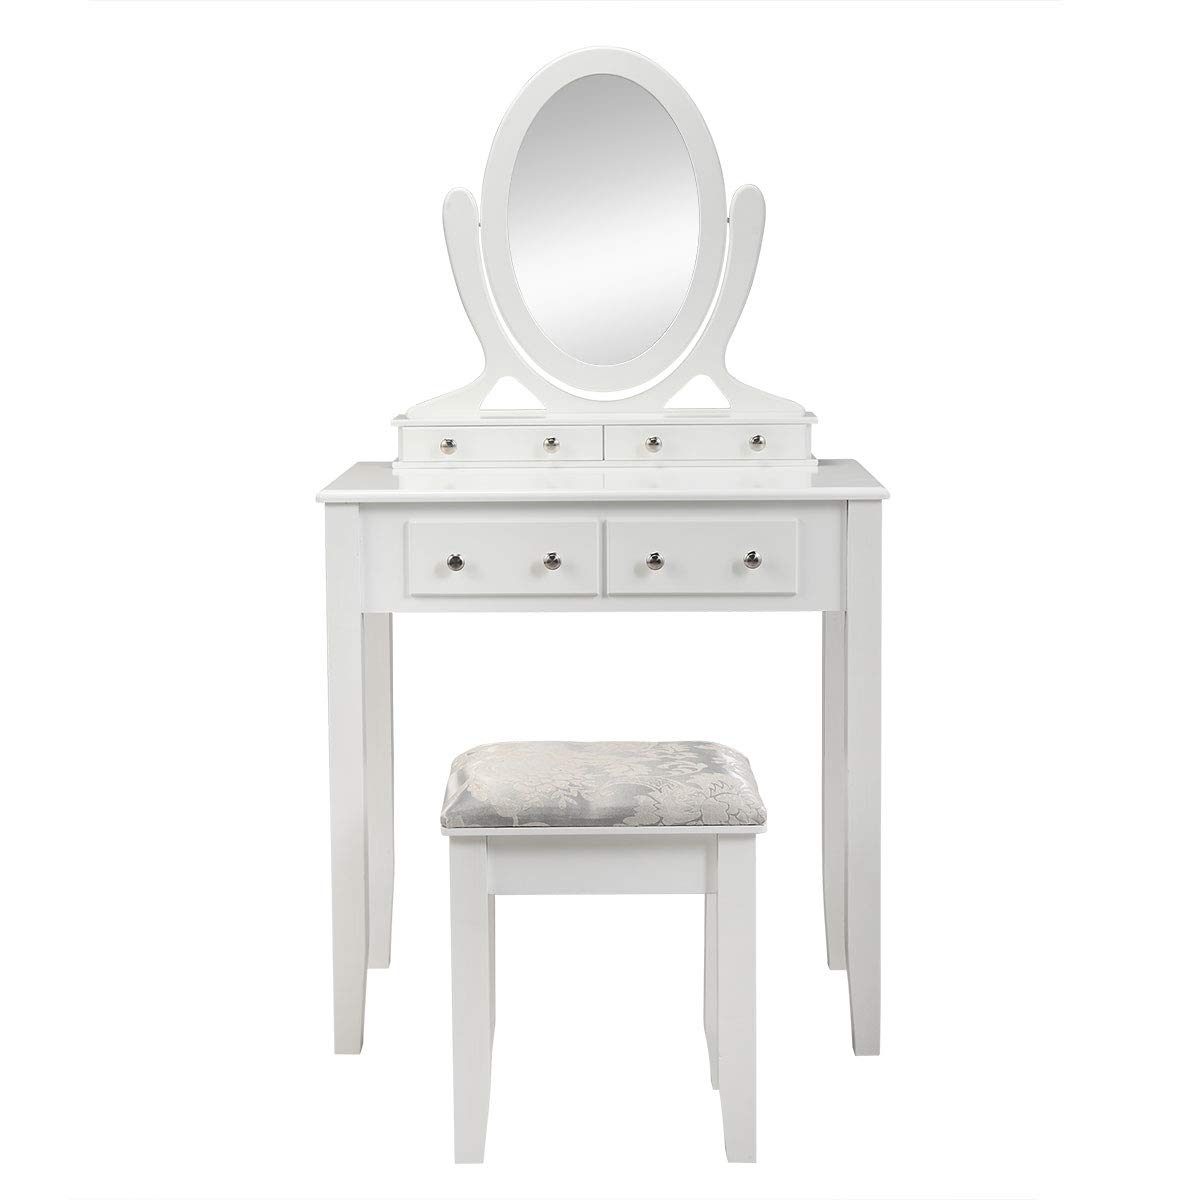 BWM.Co Vanity Table Set with Oval Mirror 4 Drawers Wood Makeup Dressing Bedroom Table Set Cushioned Stool for Girls Whit